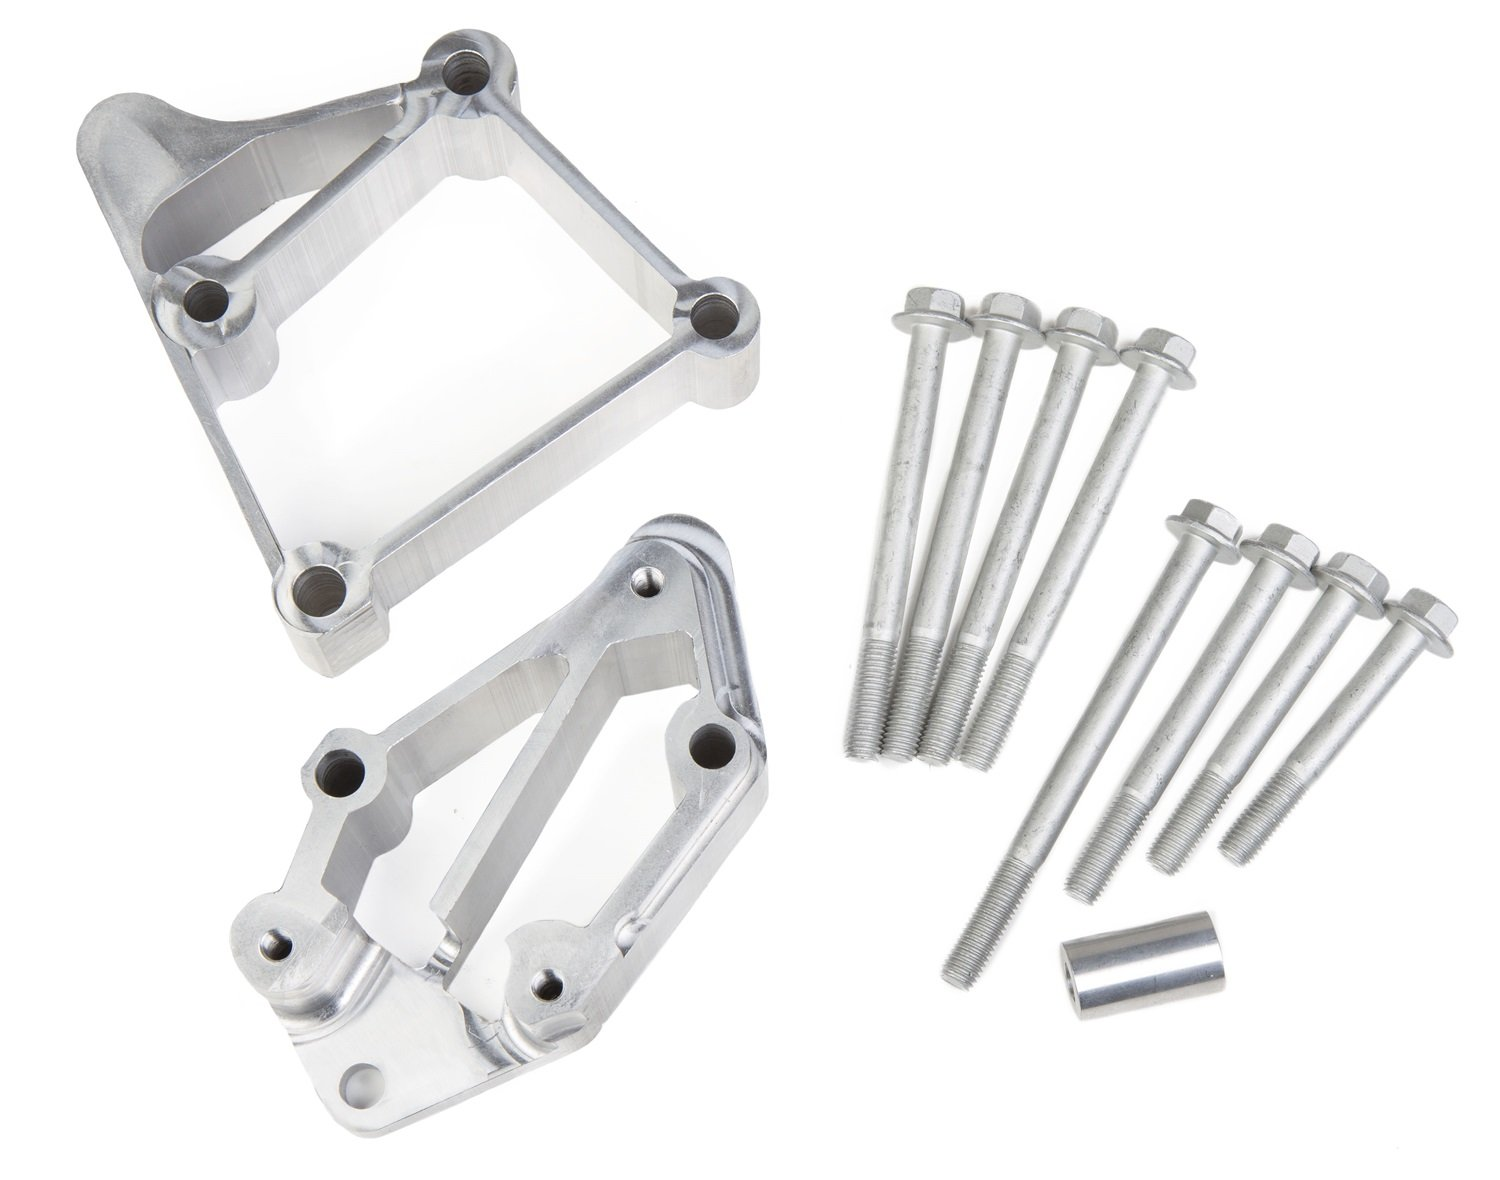 Holley 21-3 LS Accessory Drive Bracket Kit